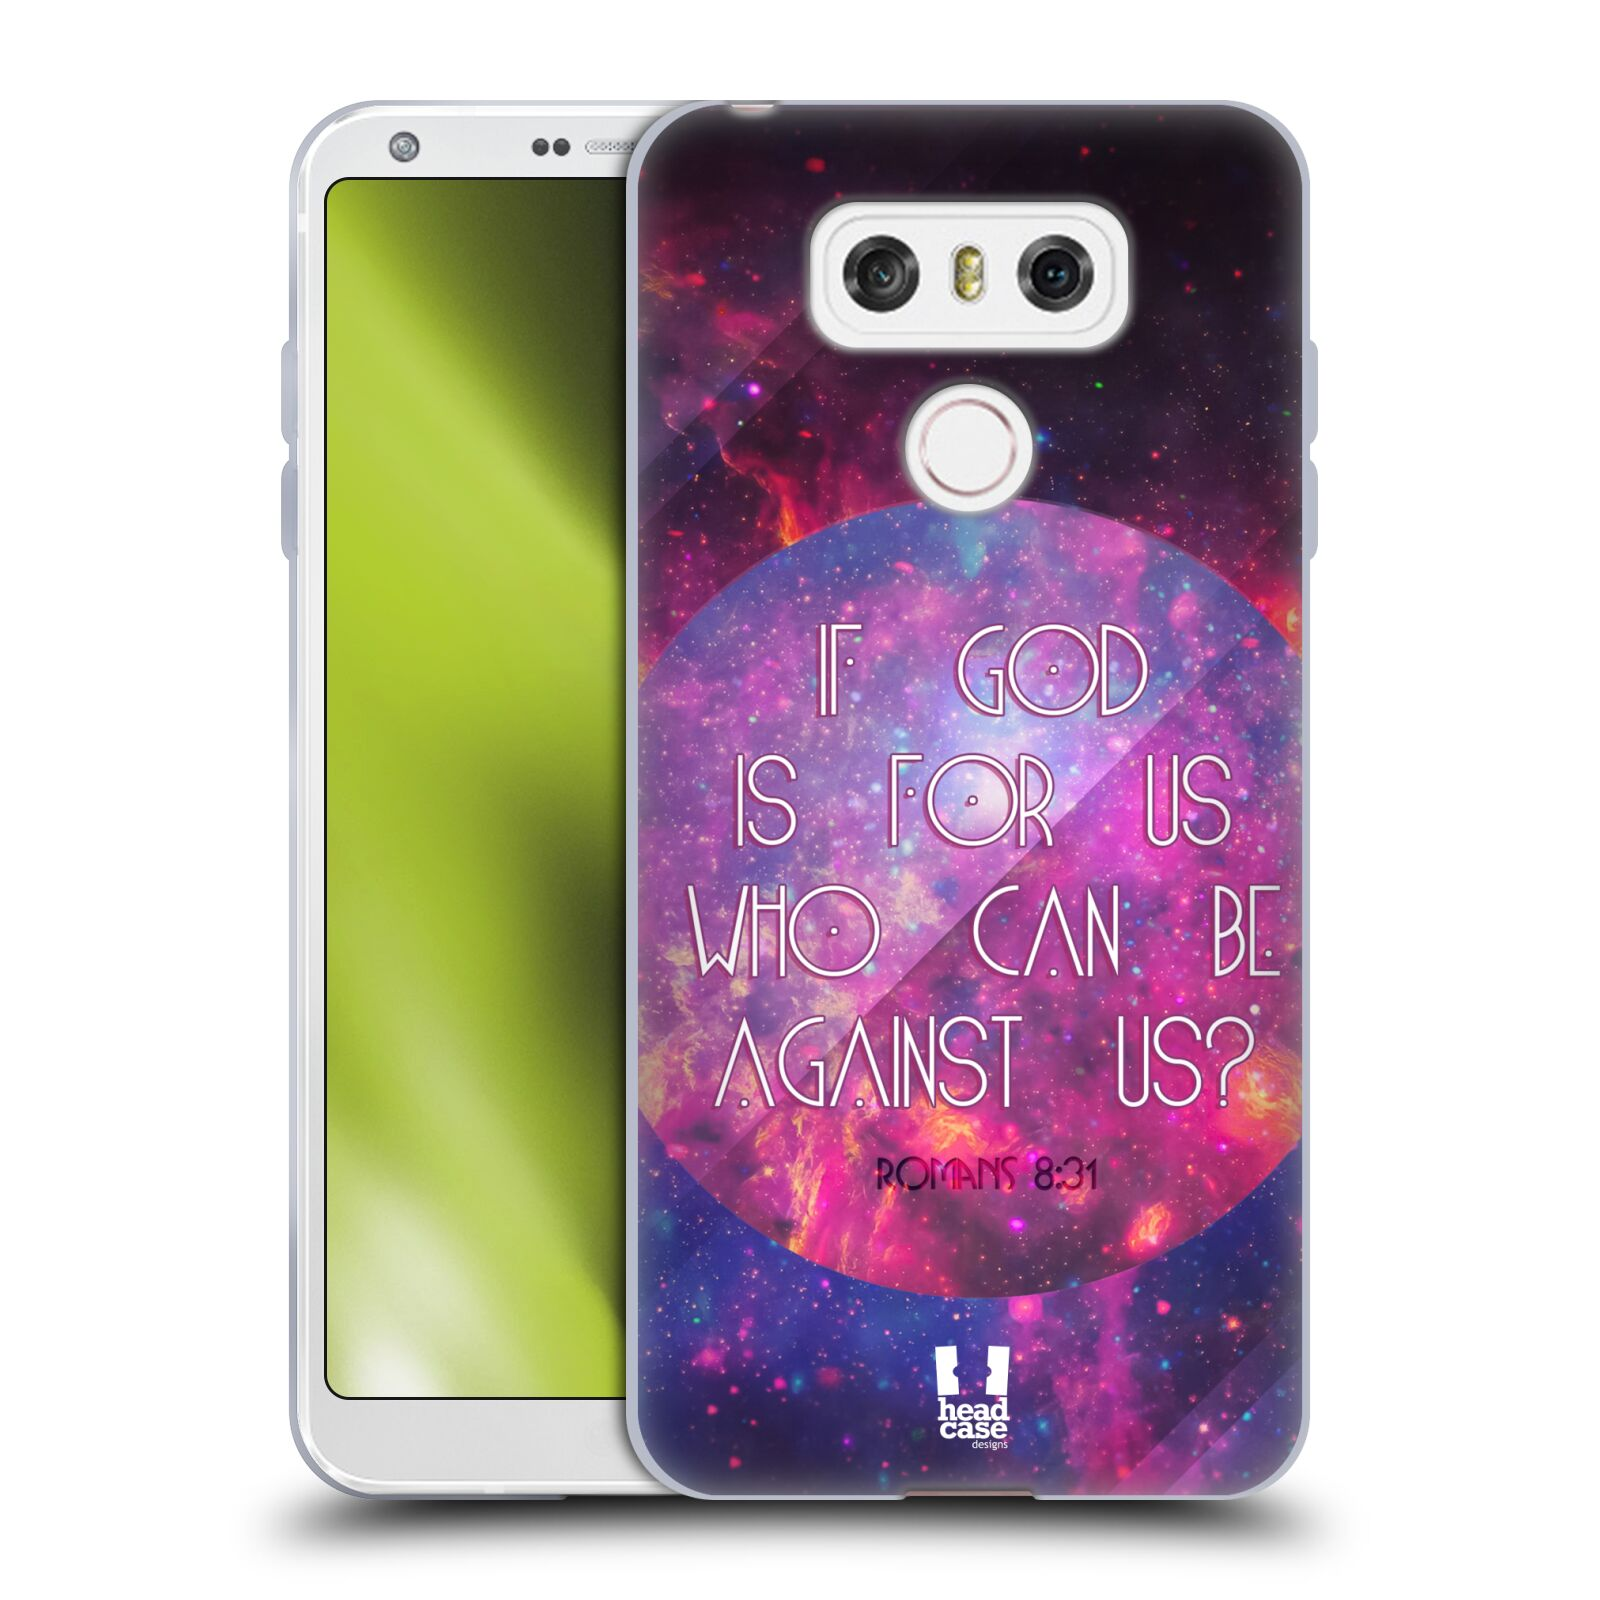 HEAD-CASE-DESIGNS-CHRISTIAN-TYPOGRAPHY-SOFT-GEL-CASE-FOR-LG-G6